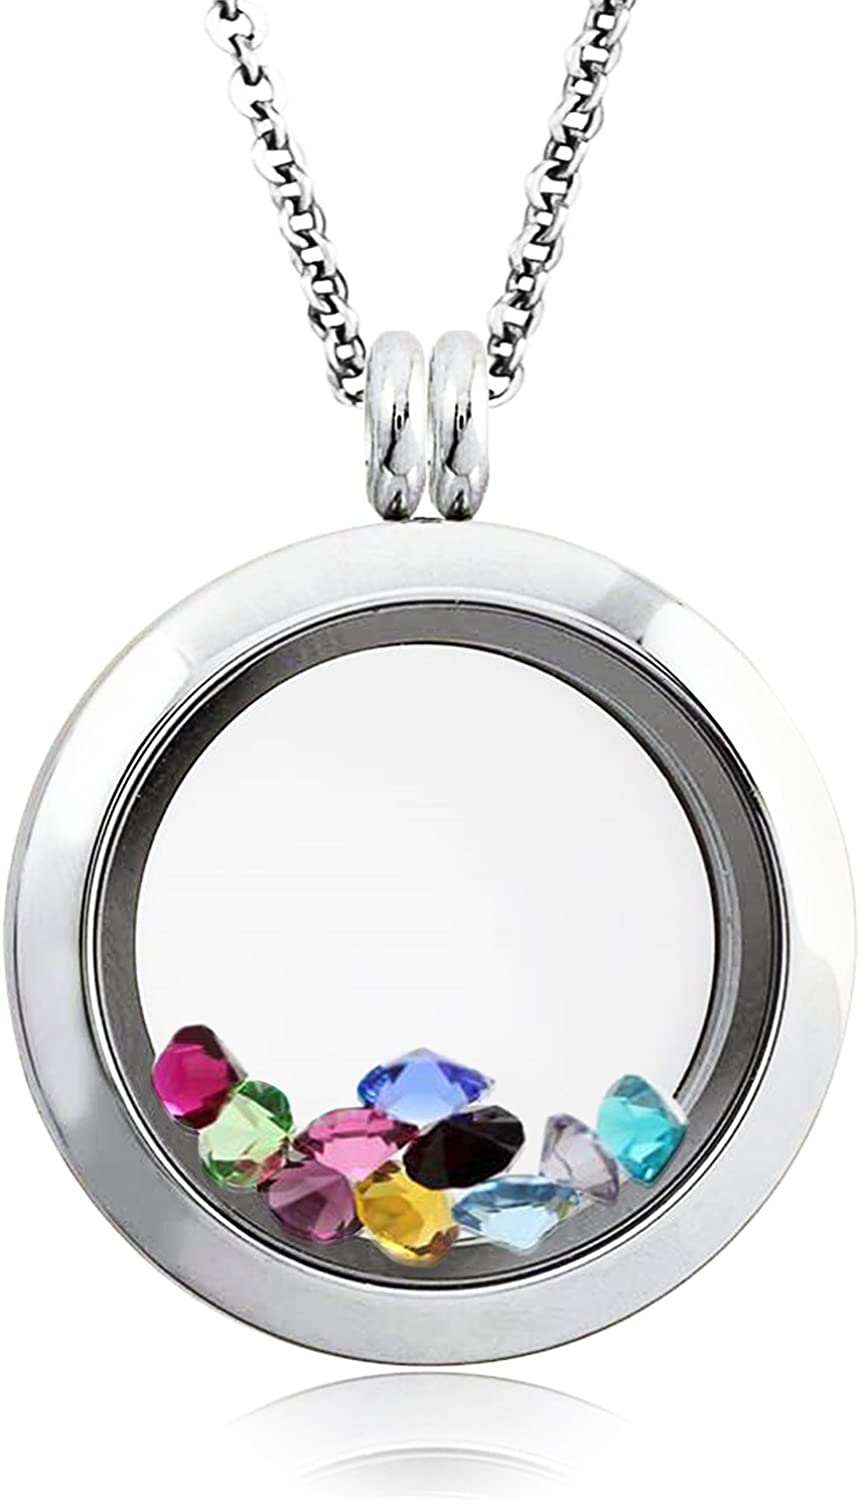 Tioneer 25 MM Stainless Steel Floating Glass Charm Locket Pendant Necklace with 10 Randomized Colored Stones